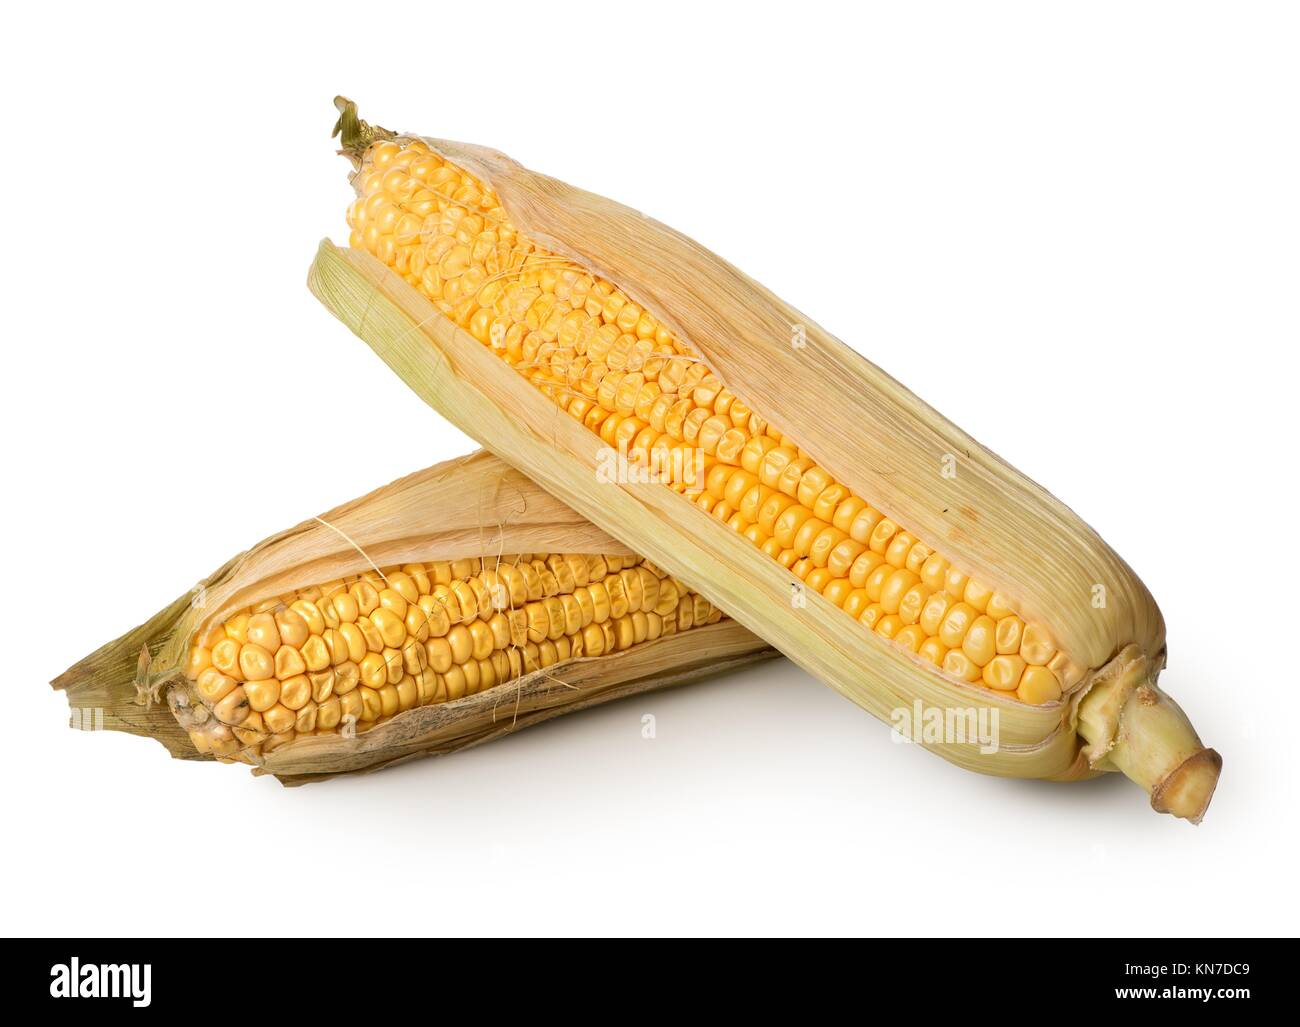 Two ears of corn isolated on a white background. - Stock Image